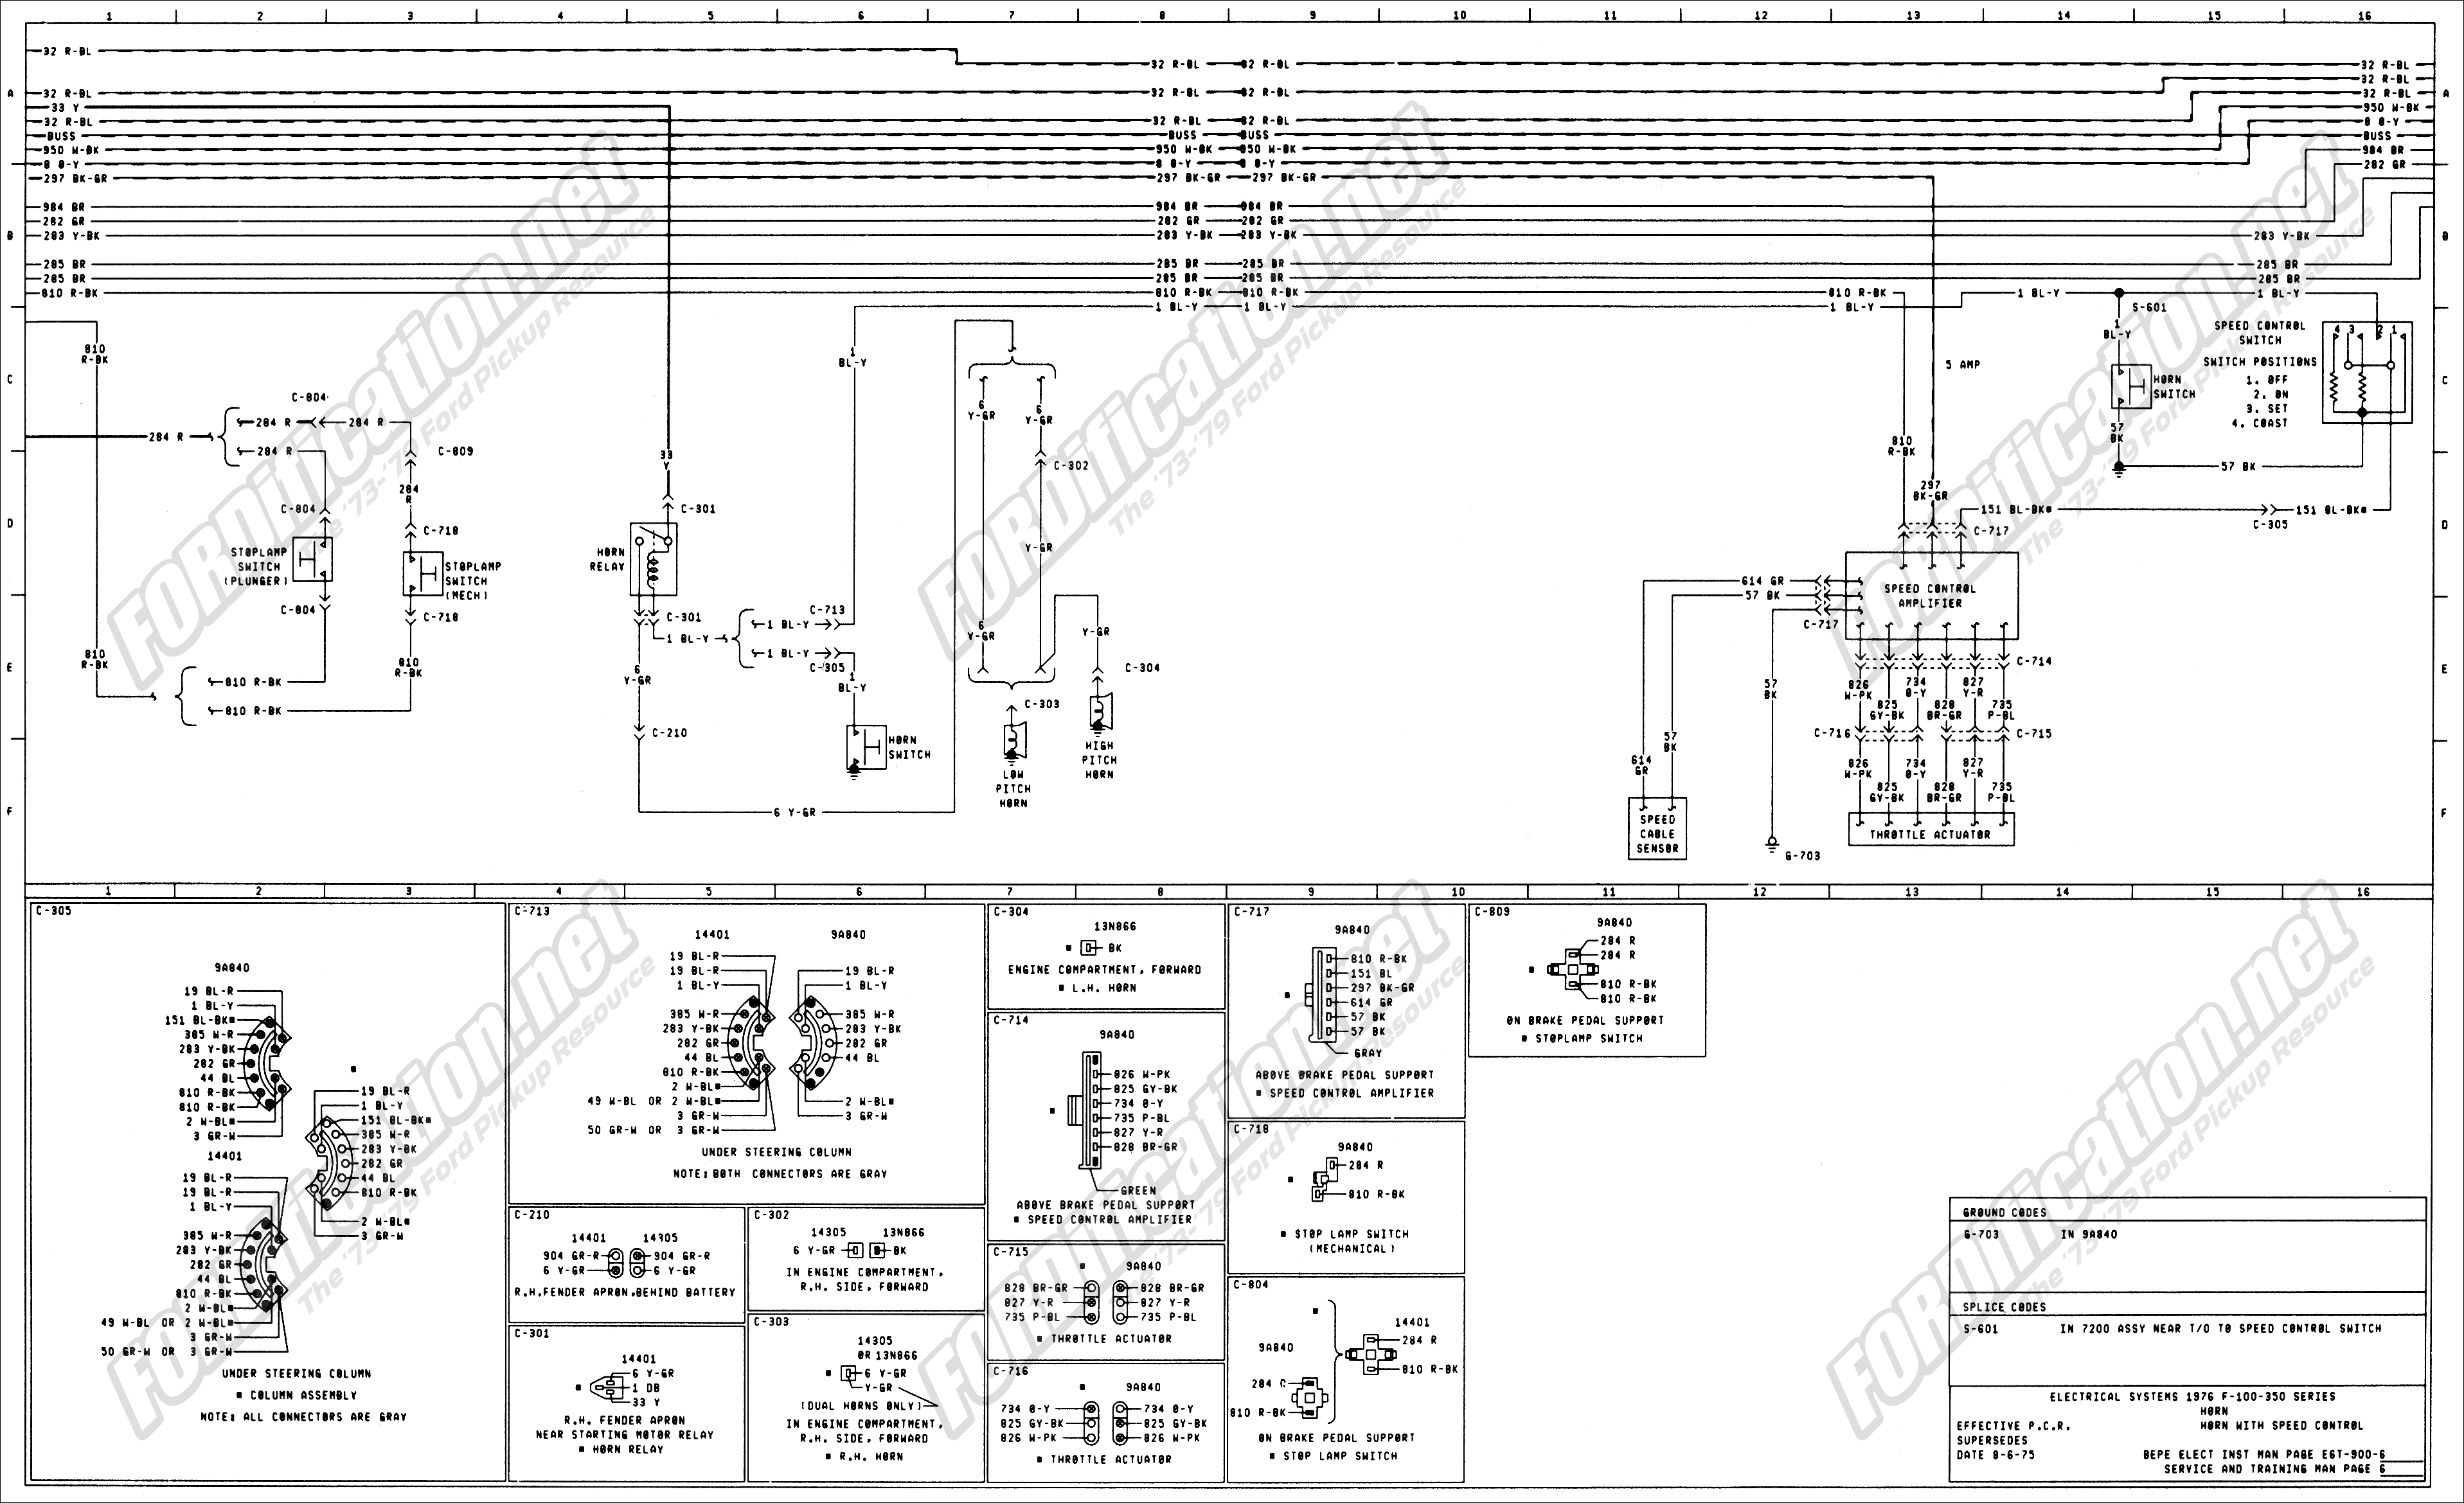 1973 1979 Ford Truck Wiring Diagrams & Schematics Fordification Net 64 Ford  Wiring Schematic 1973 77 Ford F 250 Wiring Schematic